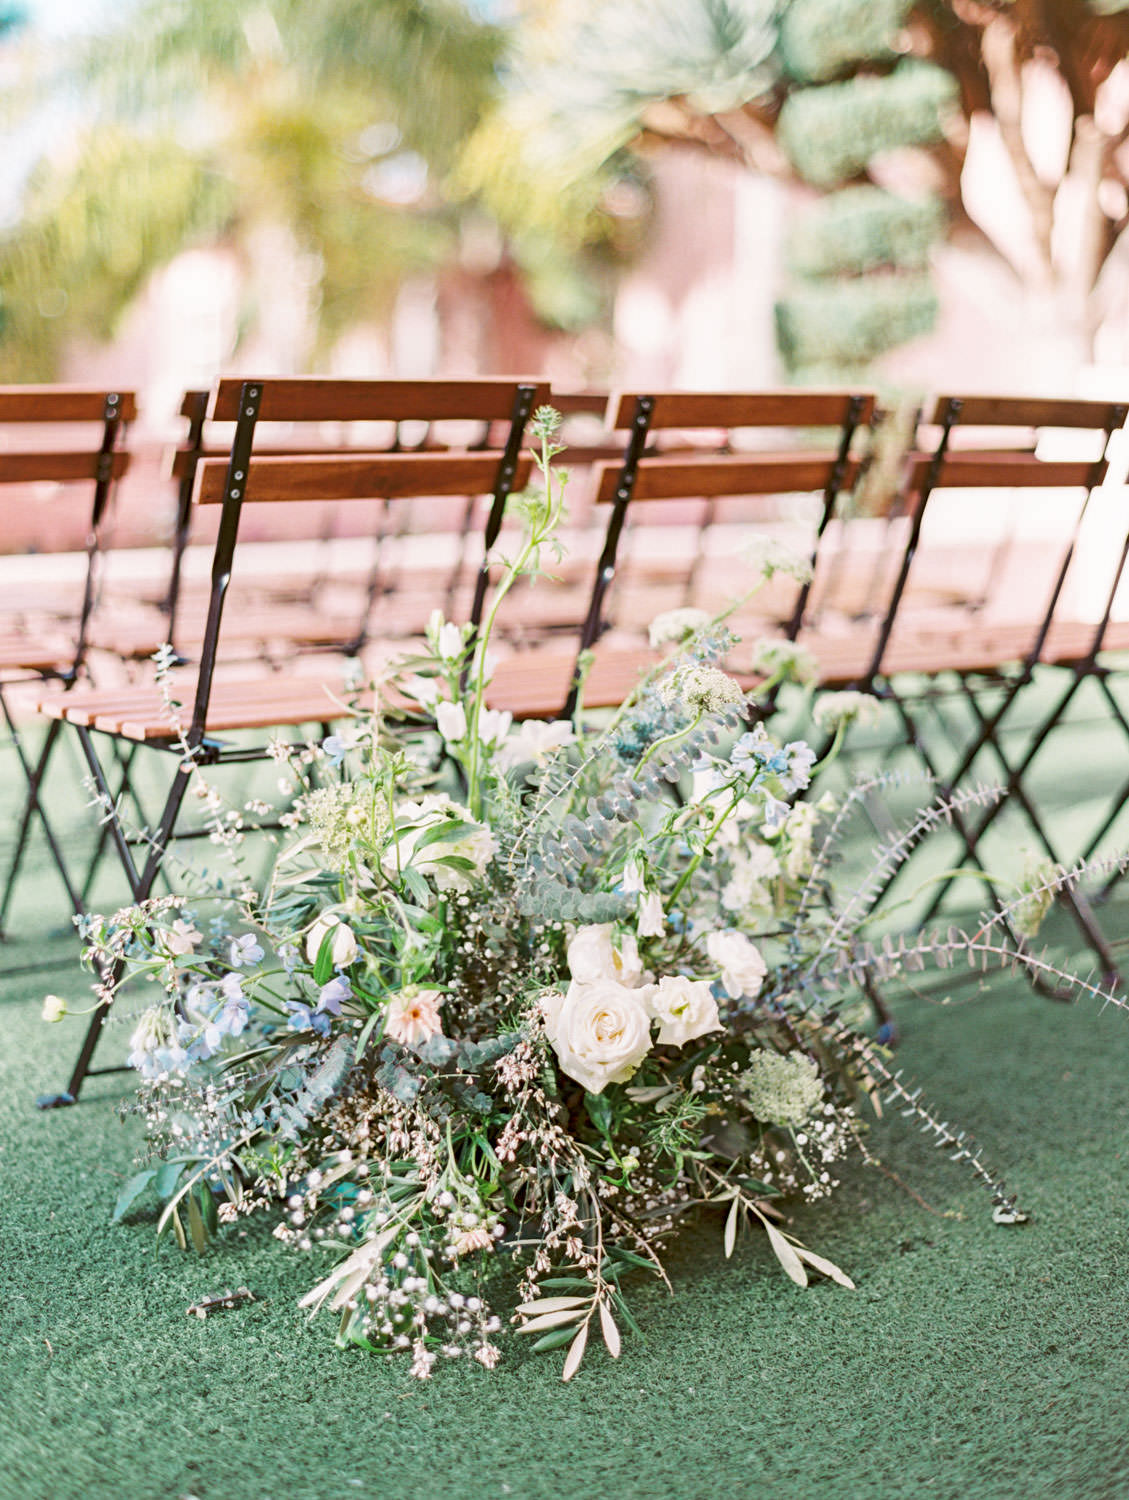 Wedding ceremony on lawn with bistro chairs and organic green, ivory, and blue tall floral arrangements, Intimate Wedding at La Valencia Hotel in La Jolla by Cavin Elizabeth Photography